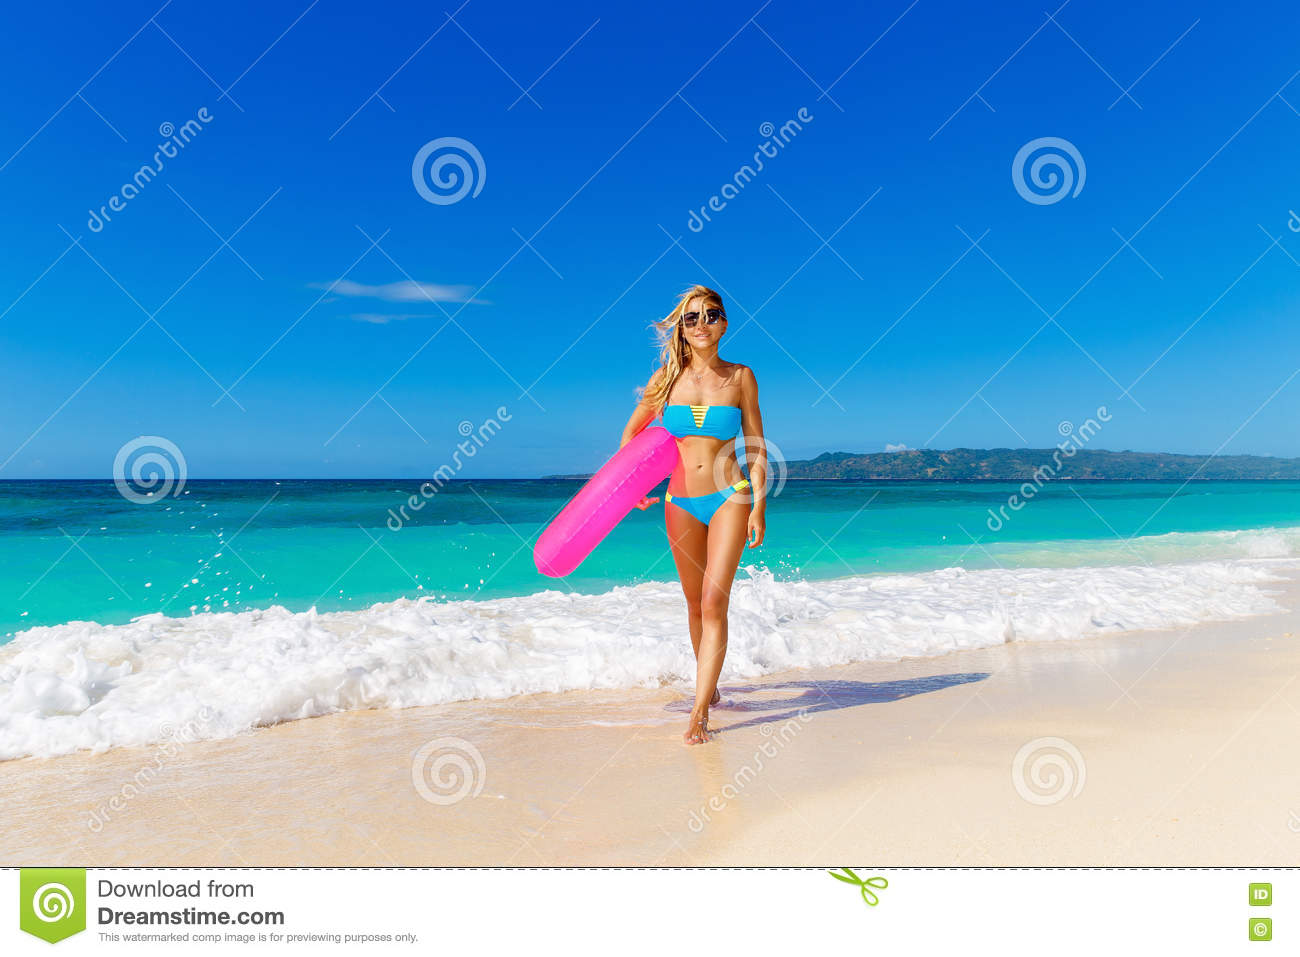 Young beautiful girl in blue bikini having fun on a tropical beach with rubber ring for swimming. Blue sea and sky in